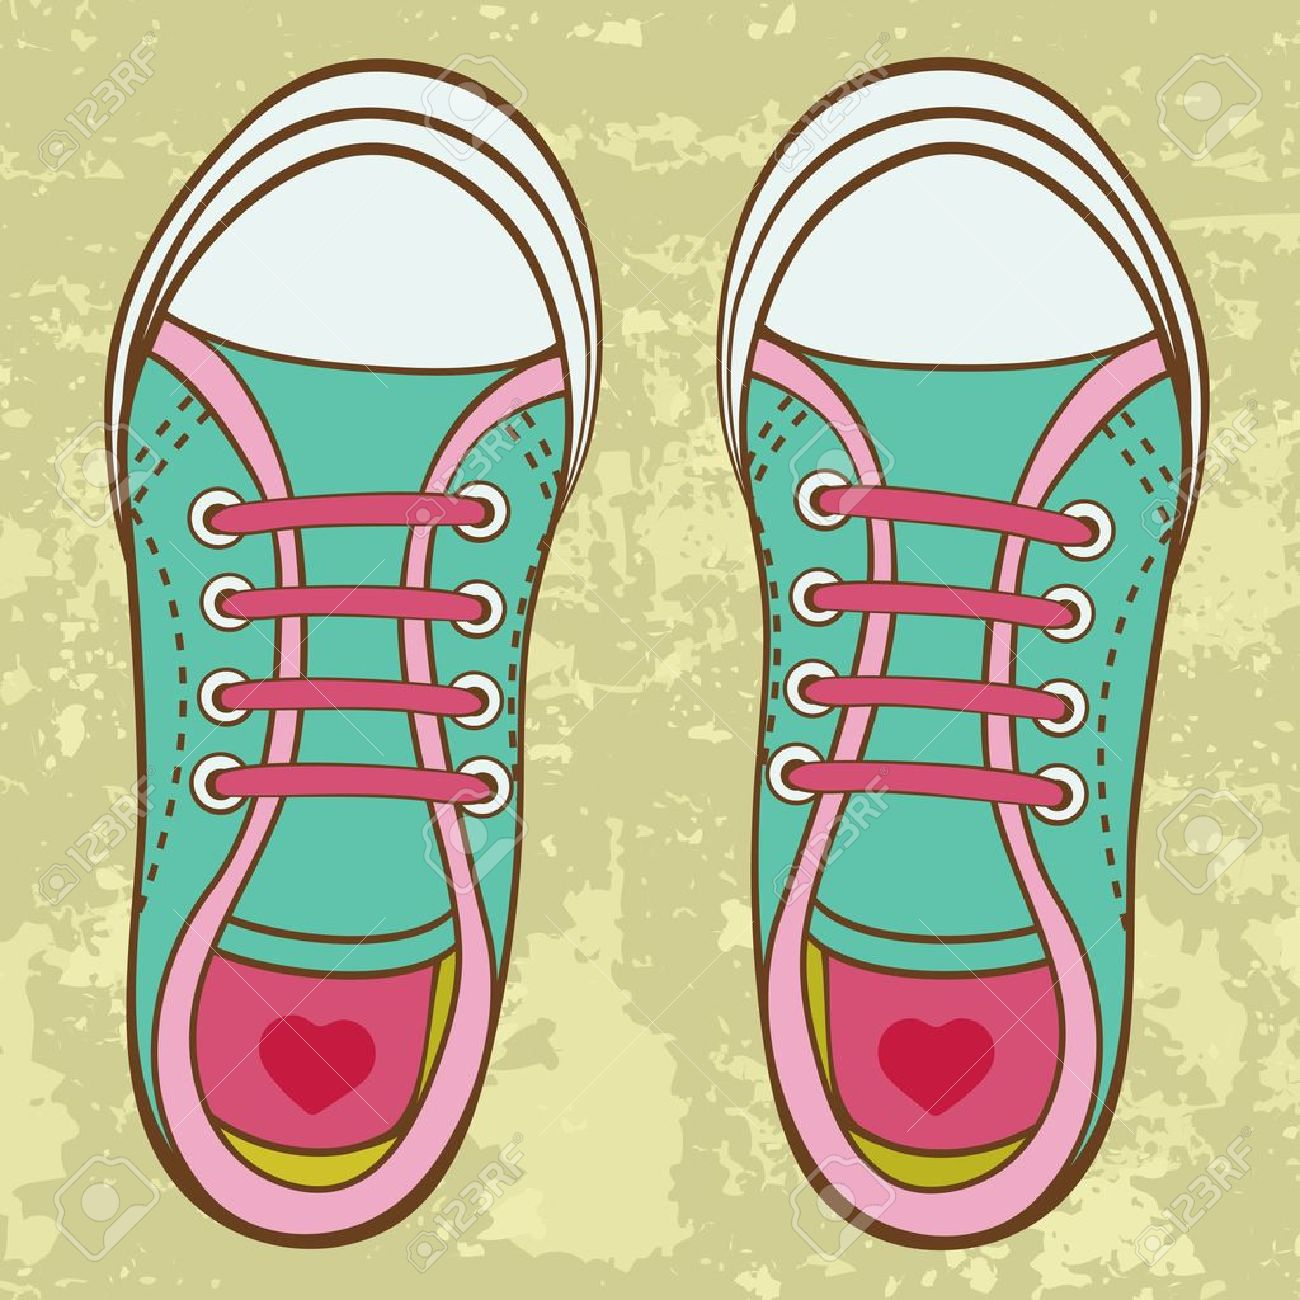 Girl shoes clipart 9 » Clipart Station.